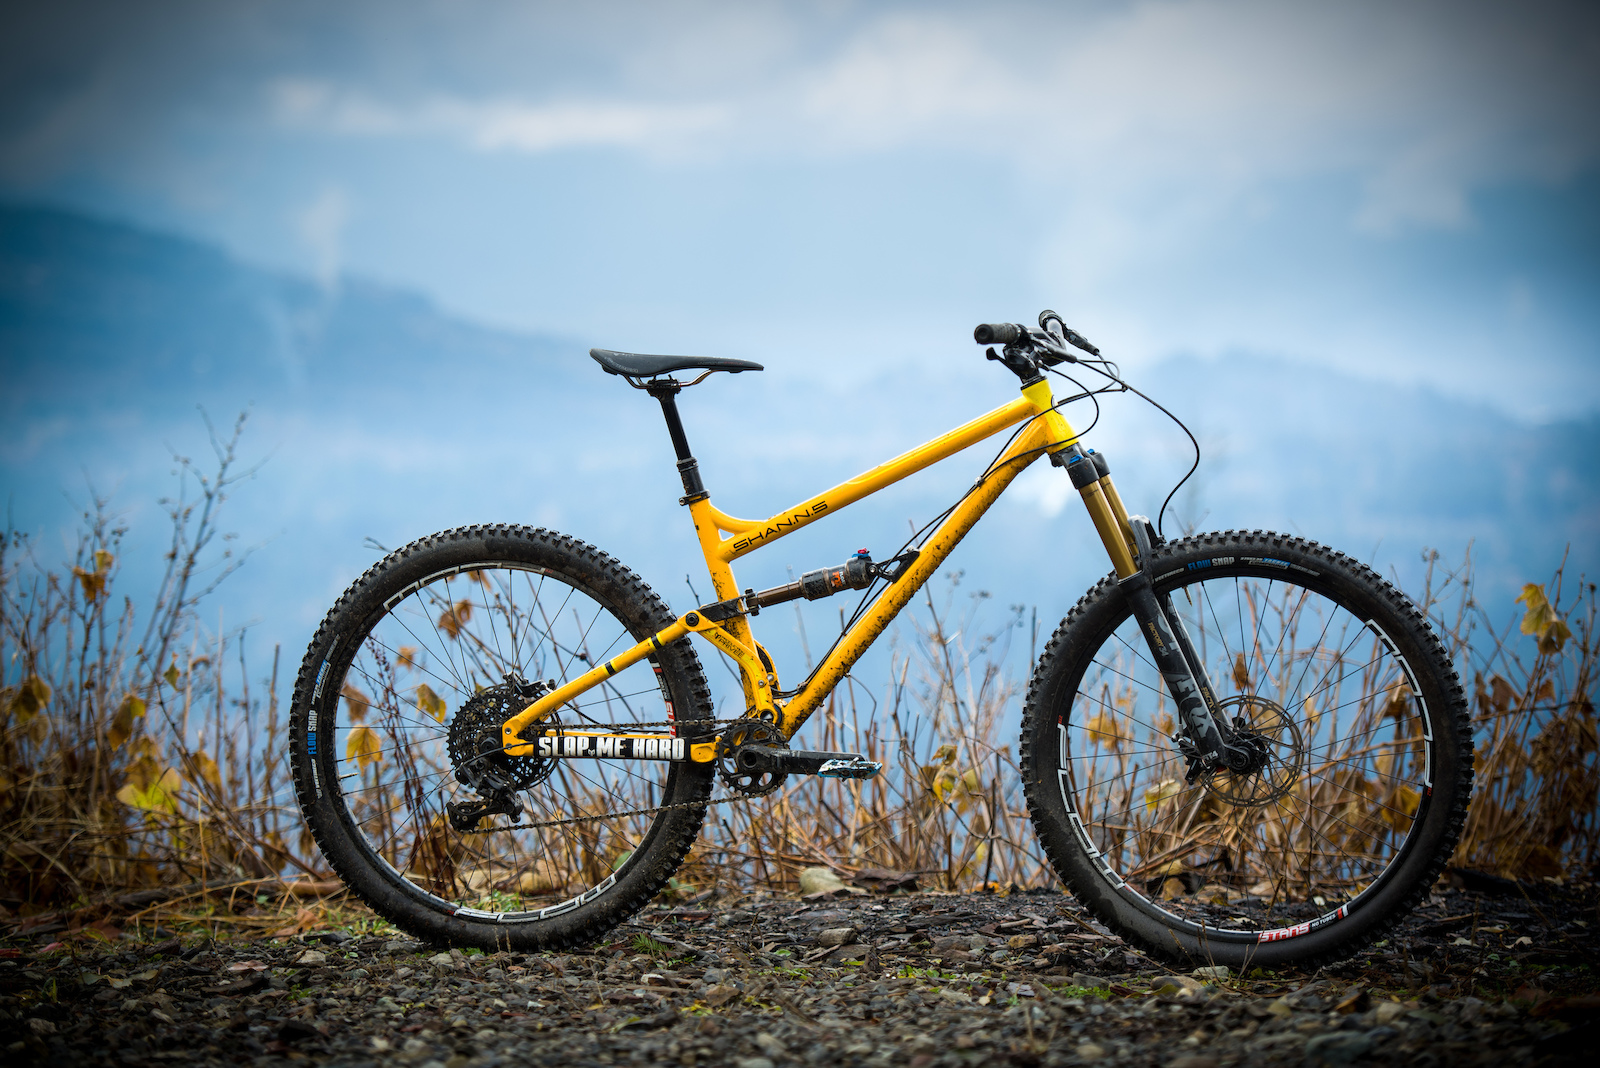 326d34a94e2 Production Privée's Steel-Framed Shan N°5 - Review - Pinkbike